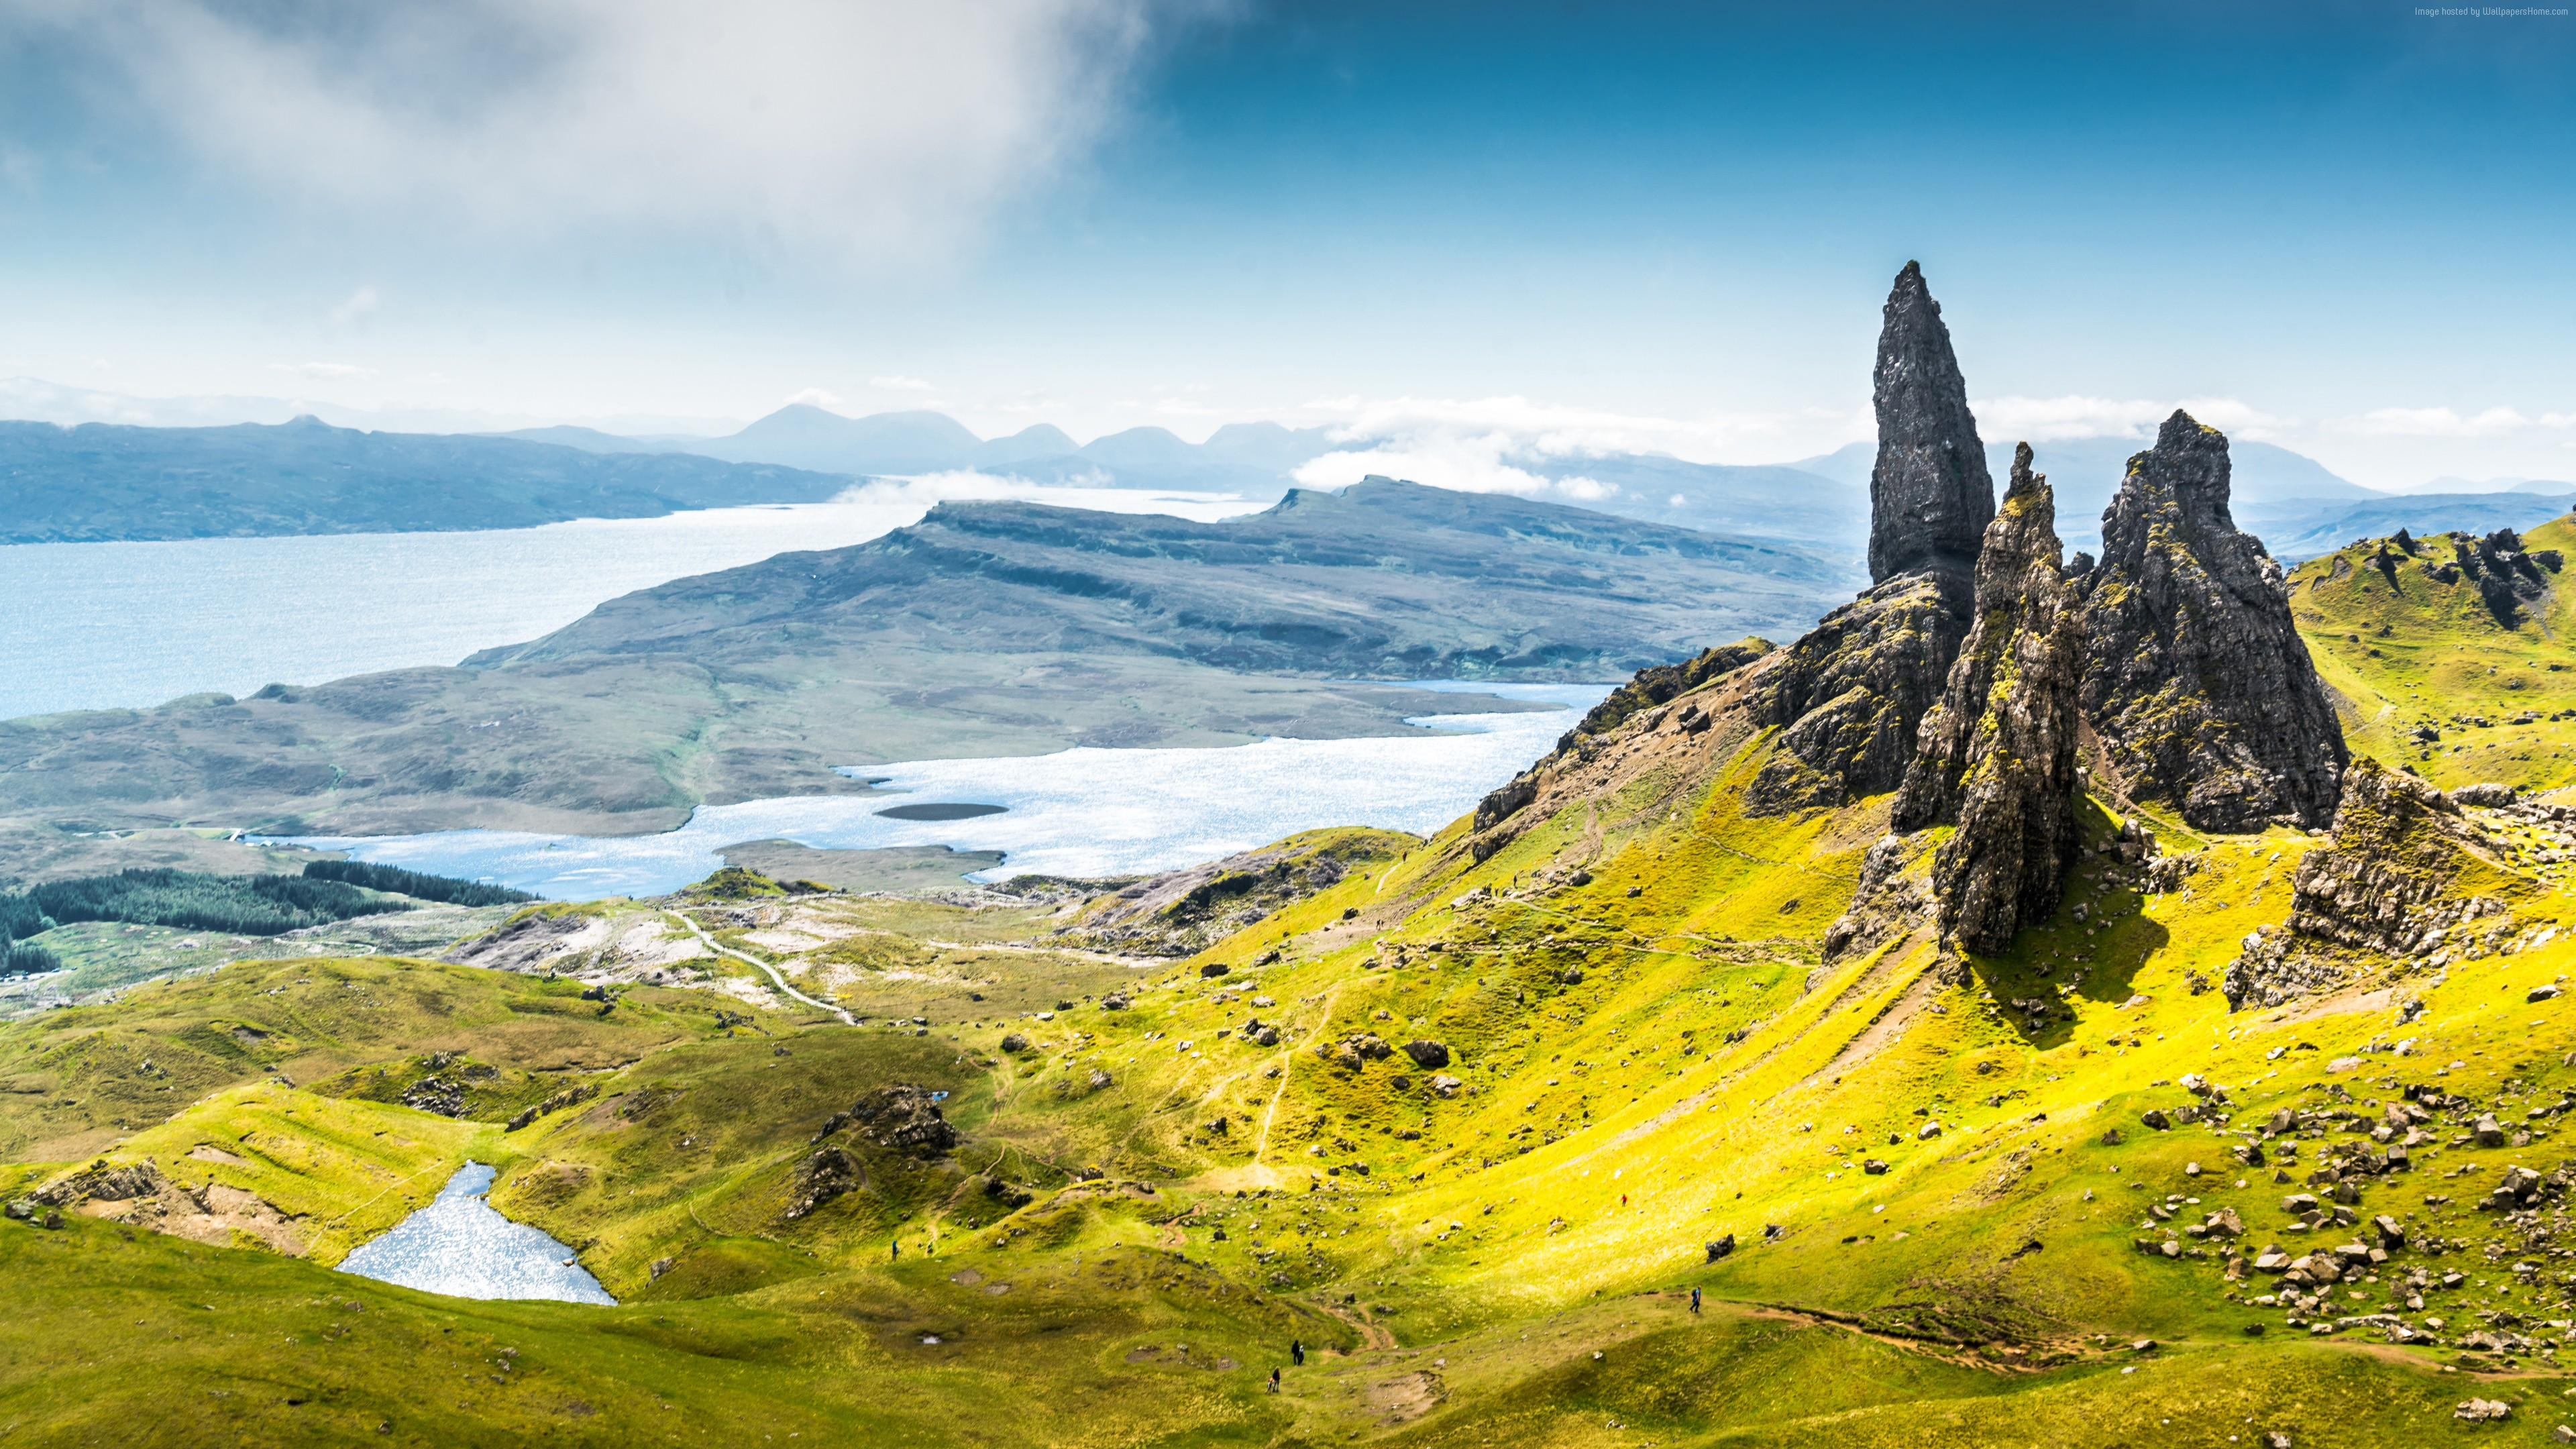 Wallpaper Isle of Skye, Scotland, Europe, nature, travel, 8k, Travel